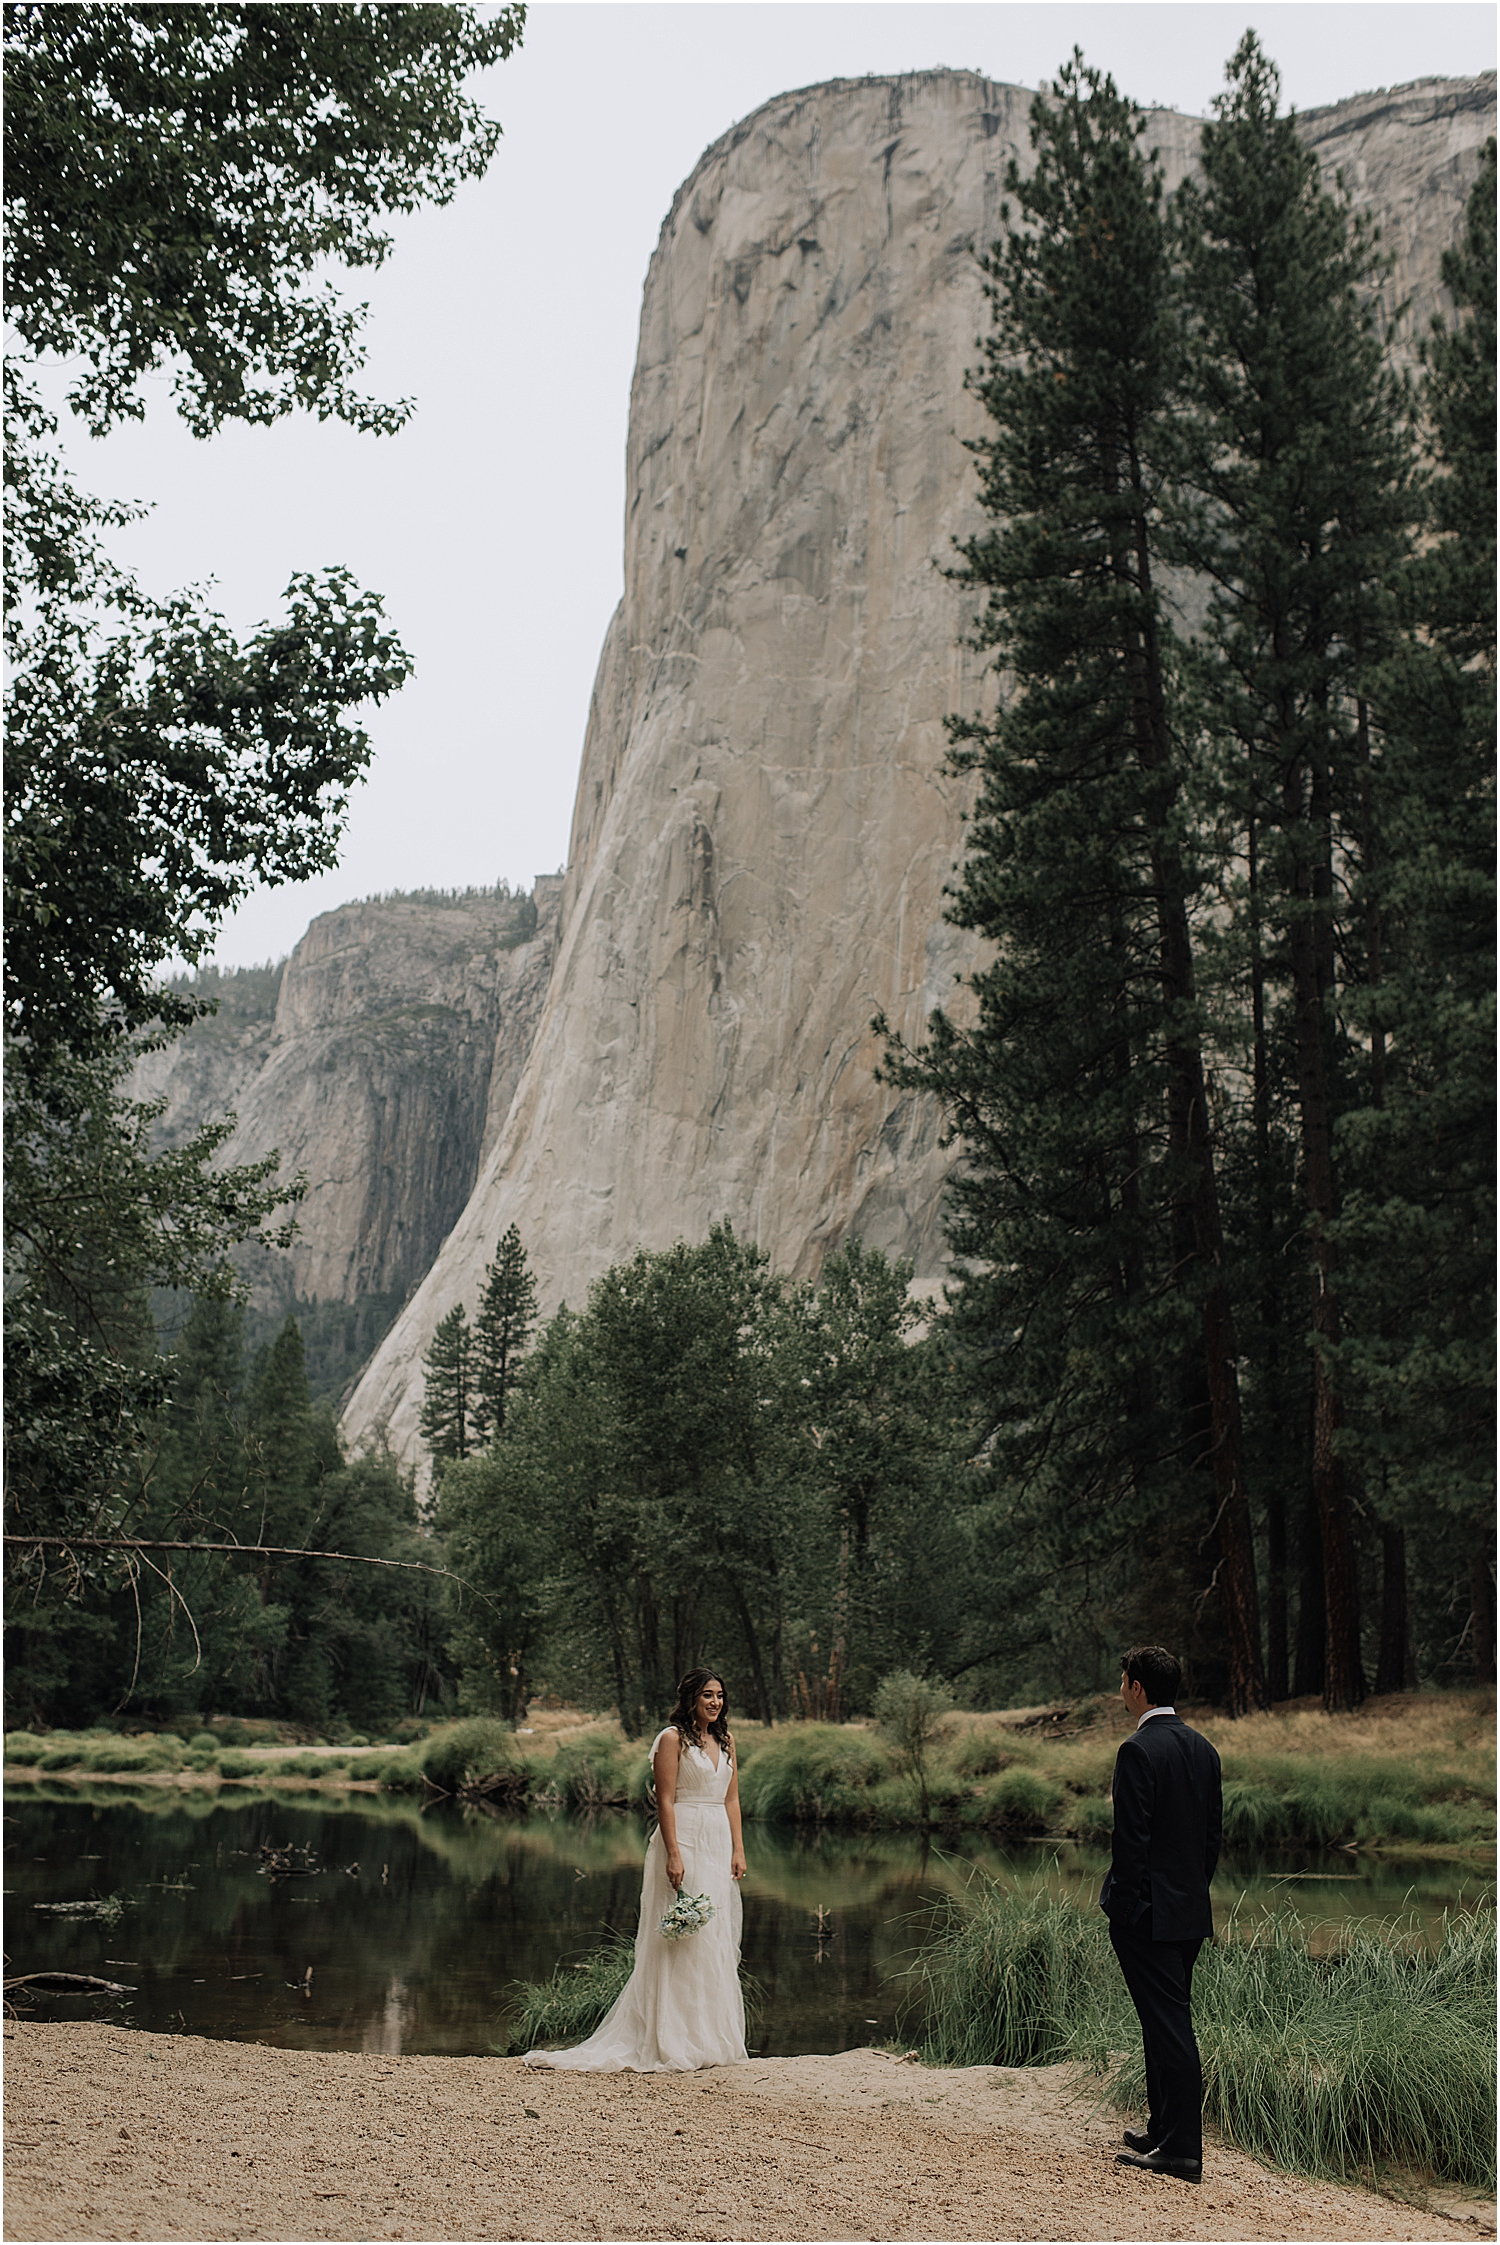 jenna and alex's adventurous yosemite elopement along the merced river and taft point